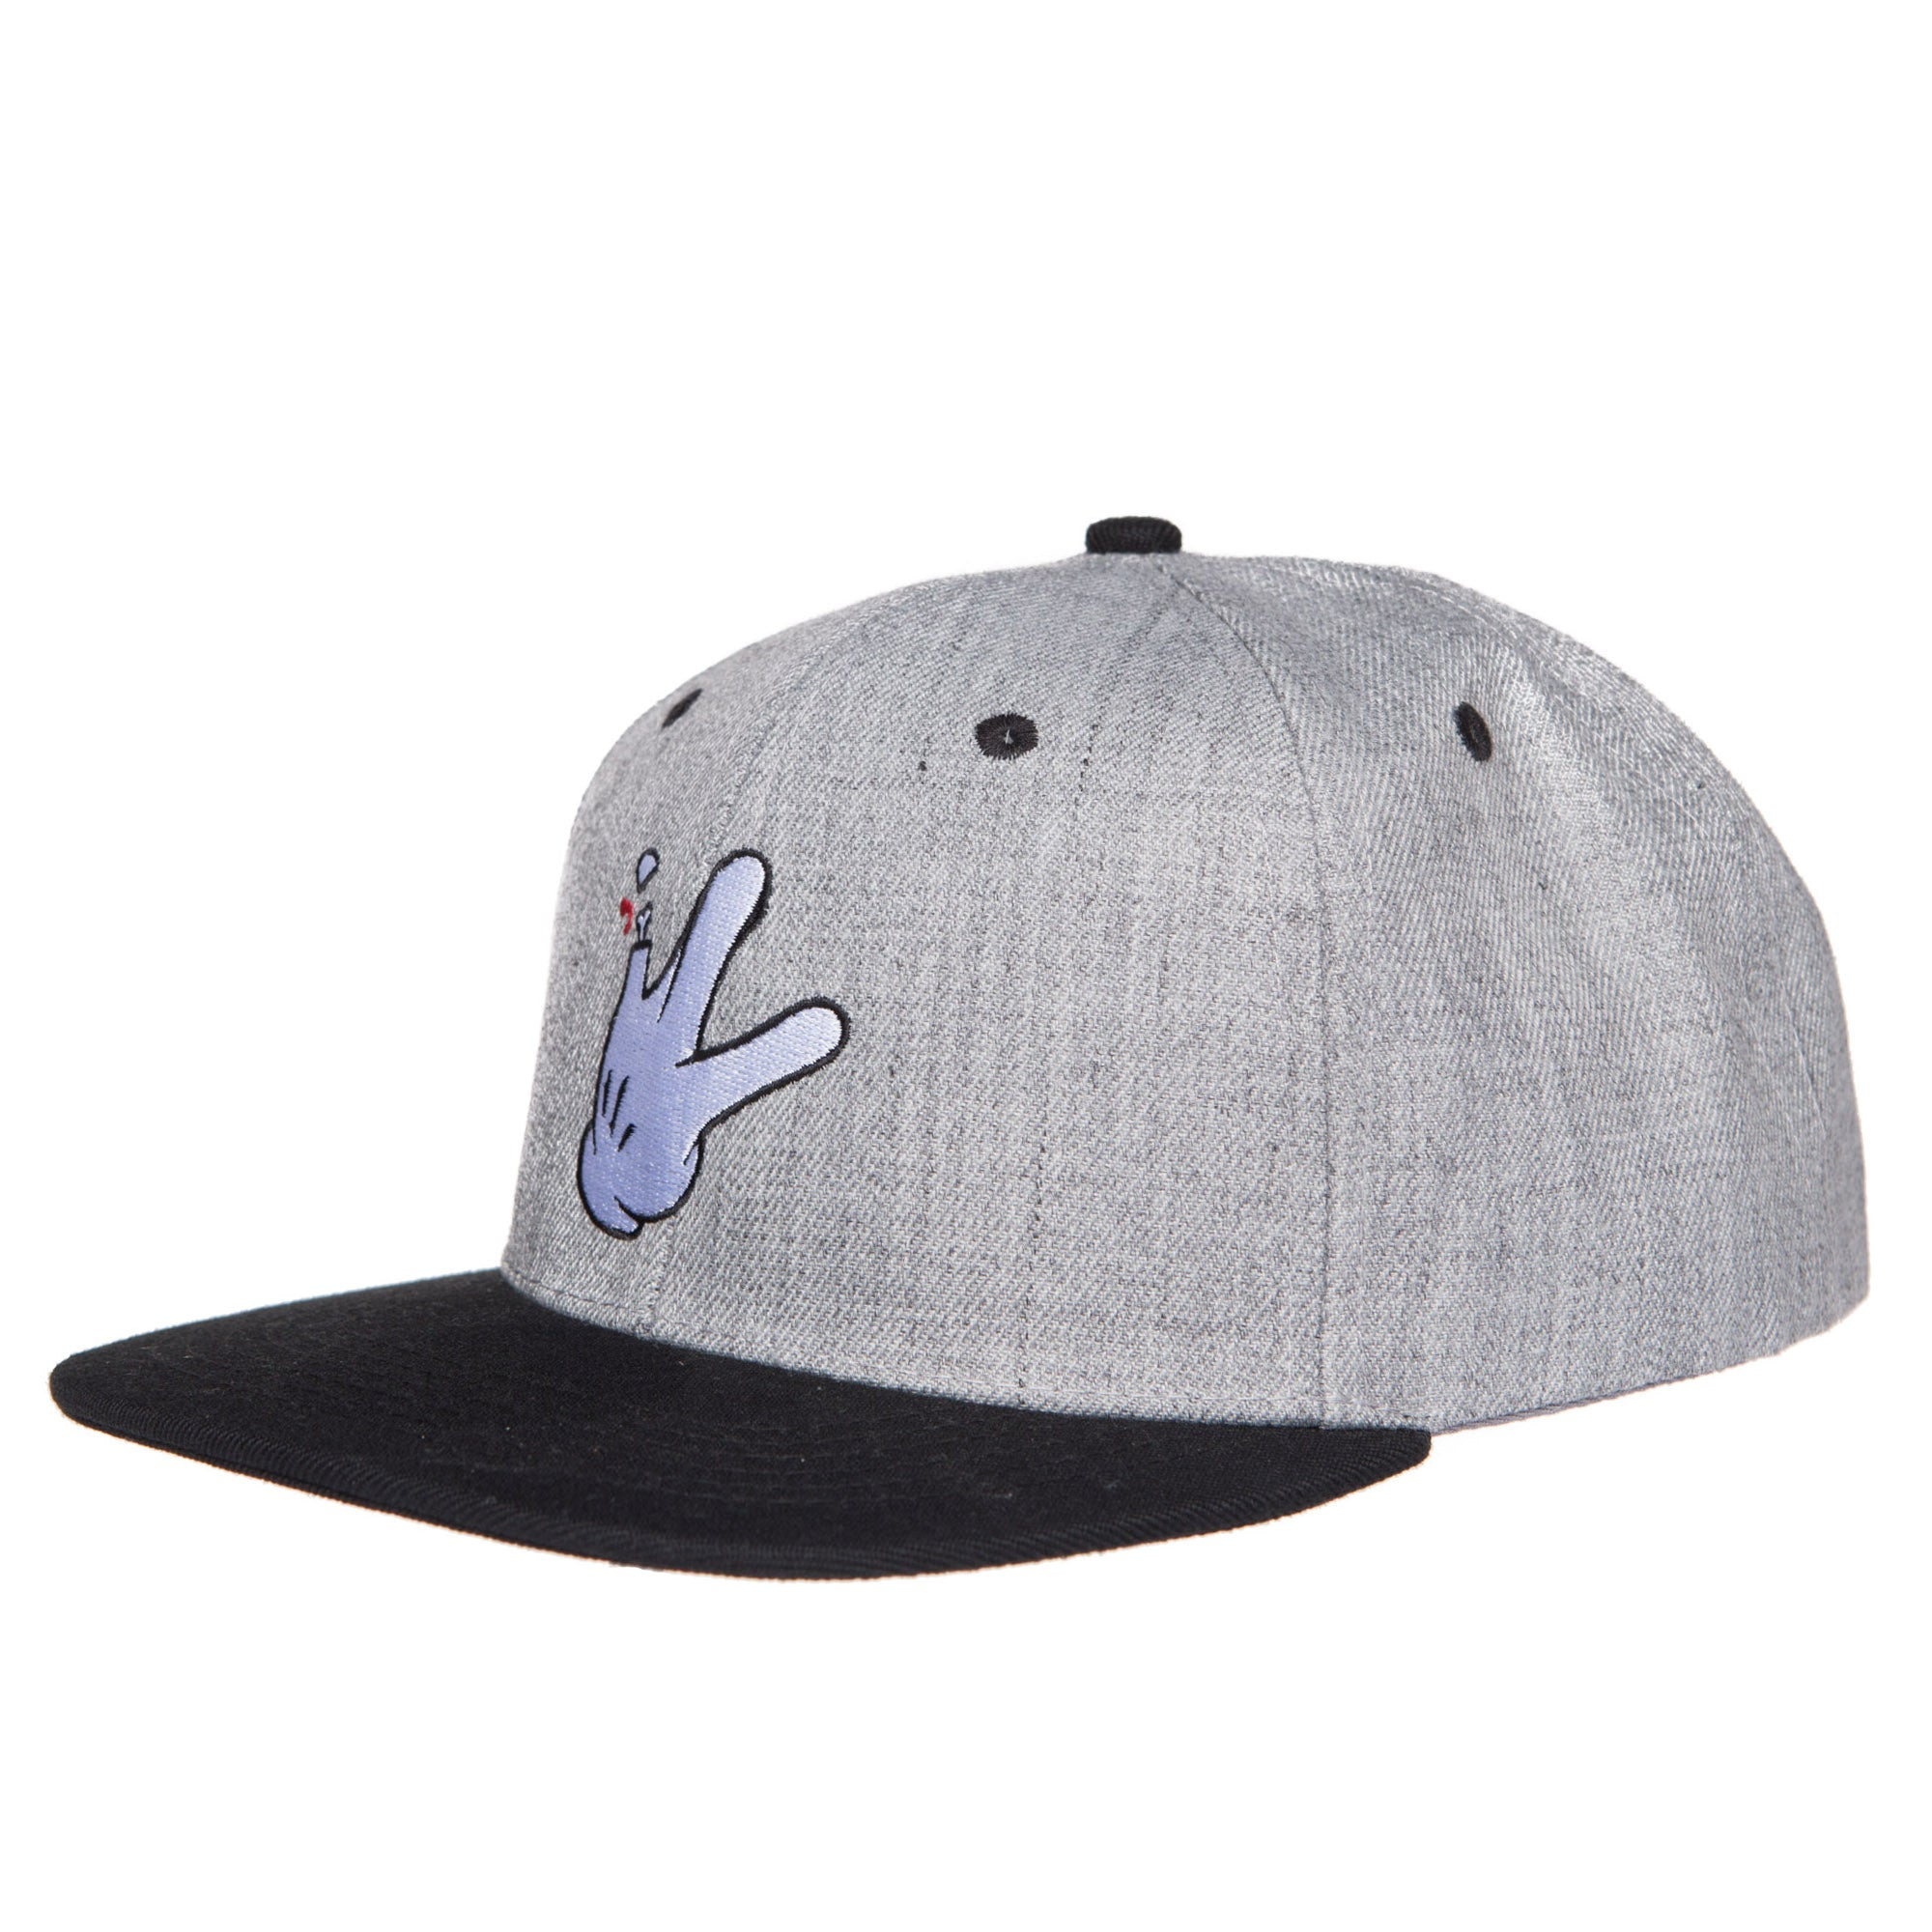 "Wool Blend Grey/Black Flatbill RaceKraft ""Glove"" SnapBack Hat"